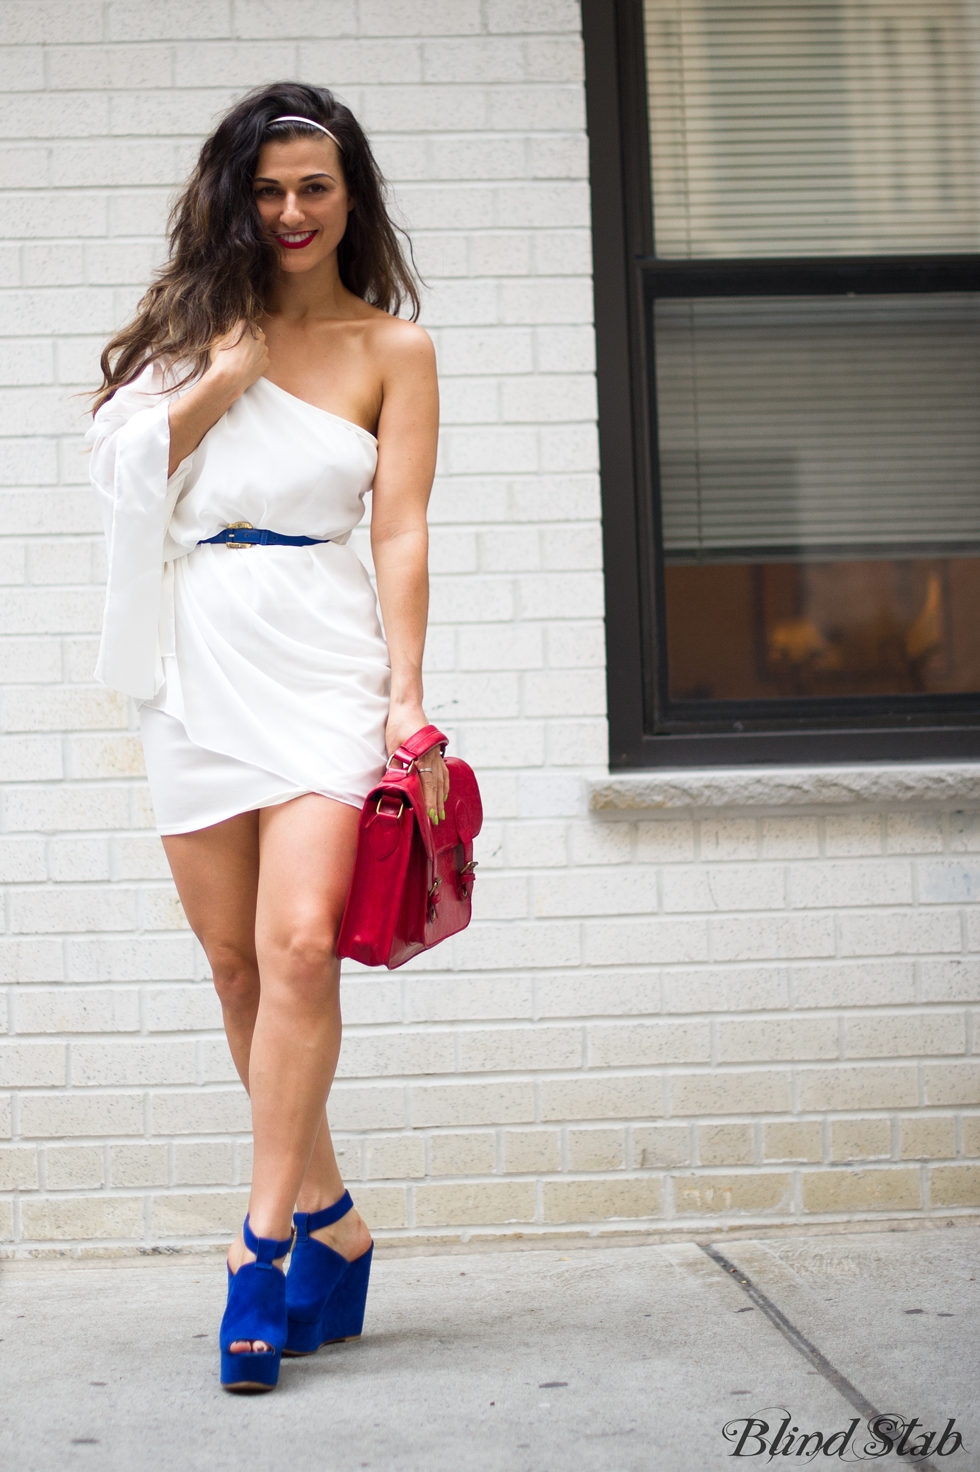 Blind-Stab-Dana-Suchow-4th-Of-July-White-One-Shoulder-Dress-TopShop-Platforms_KOO4054